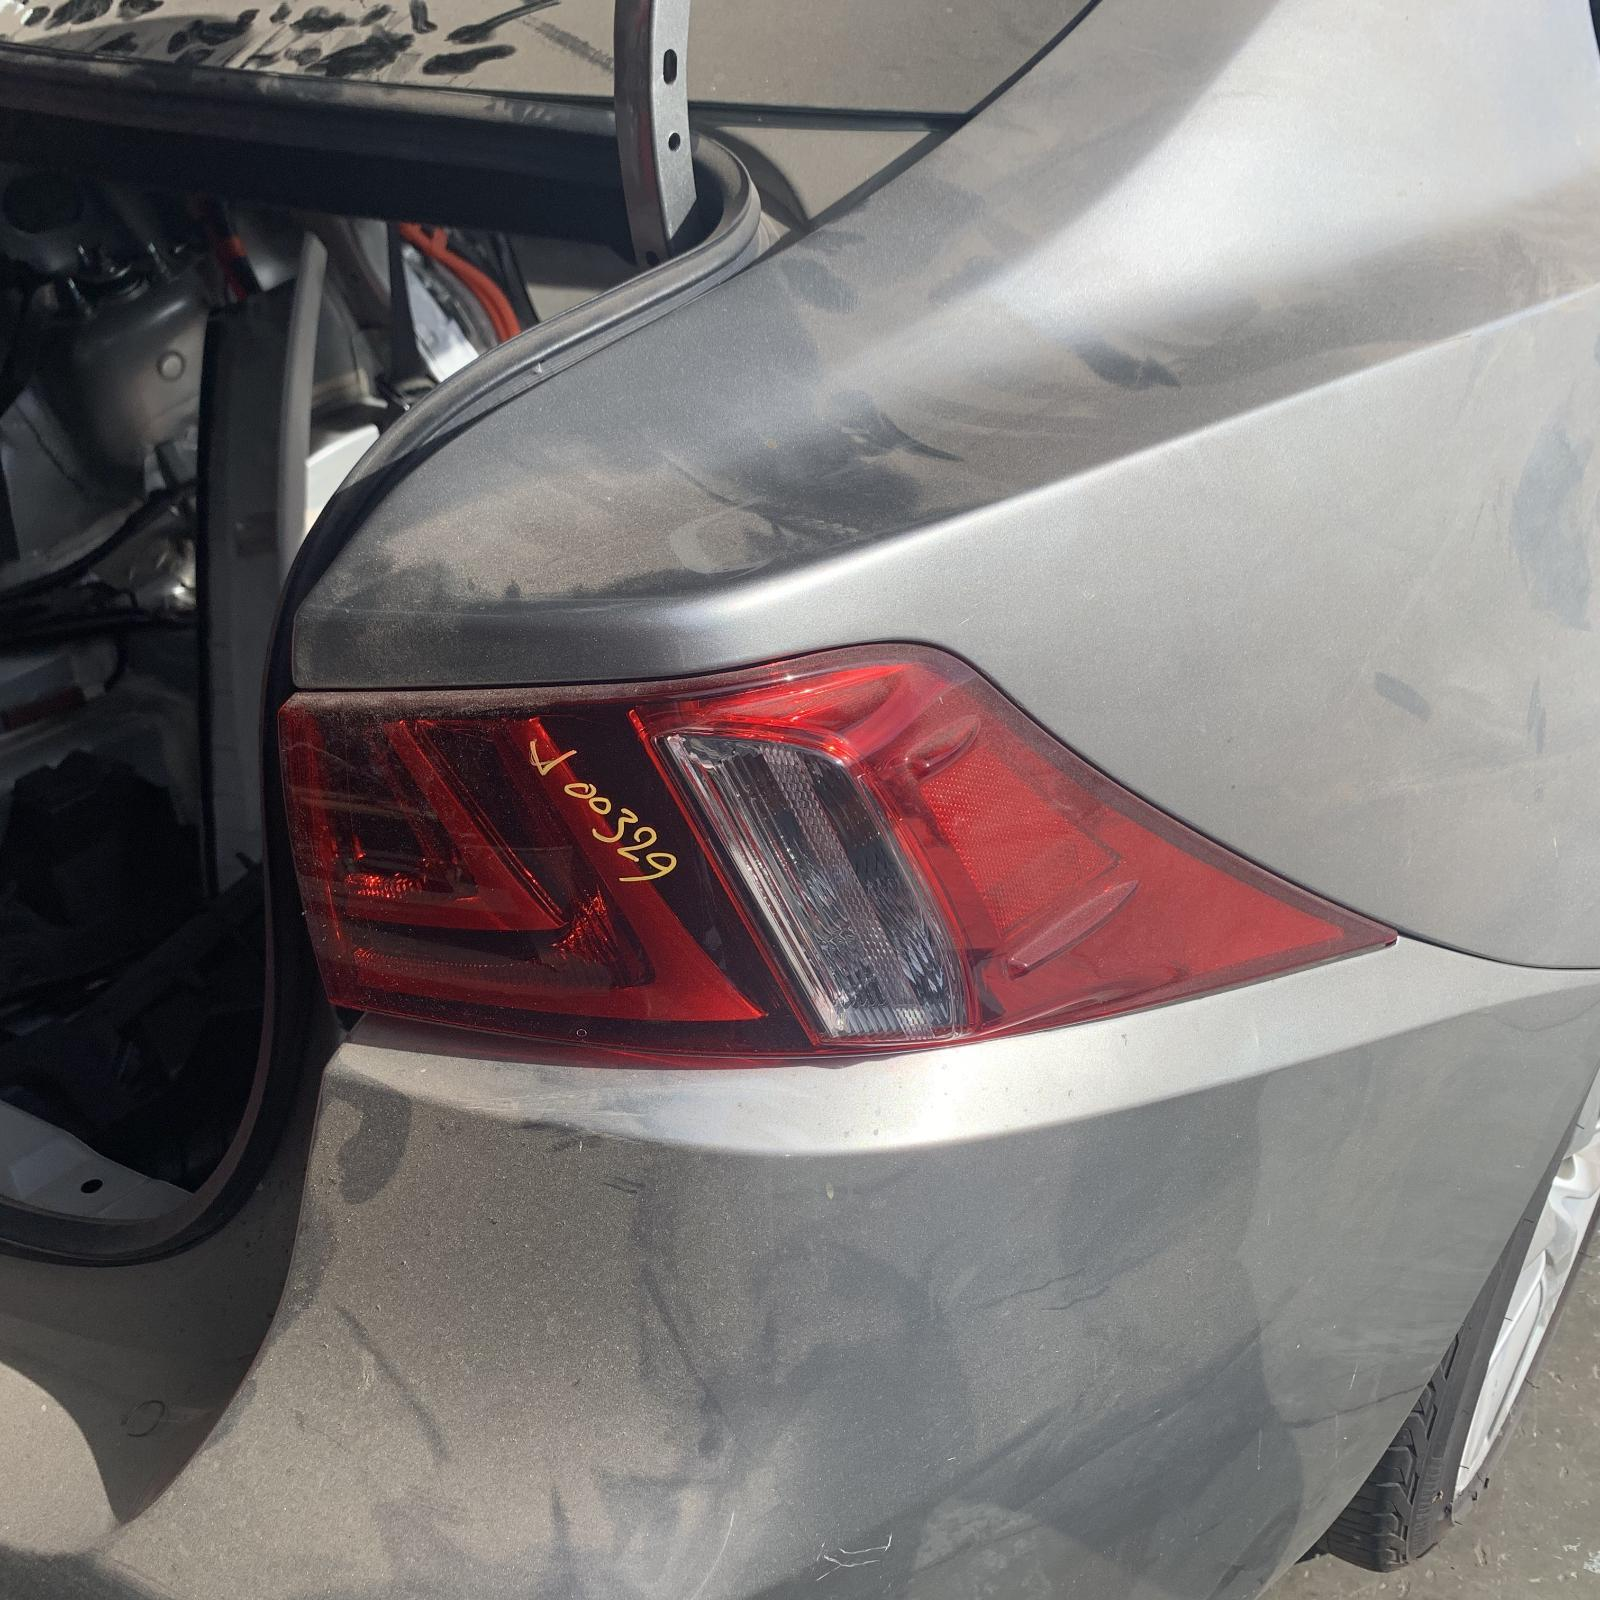 LEXUS IS, Right Taillight, IS200t/IS250/IS300H/IS350, XE30, 04/13-